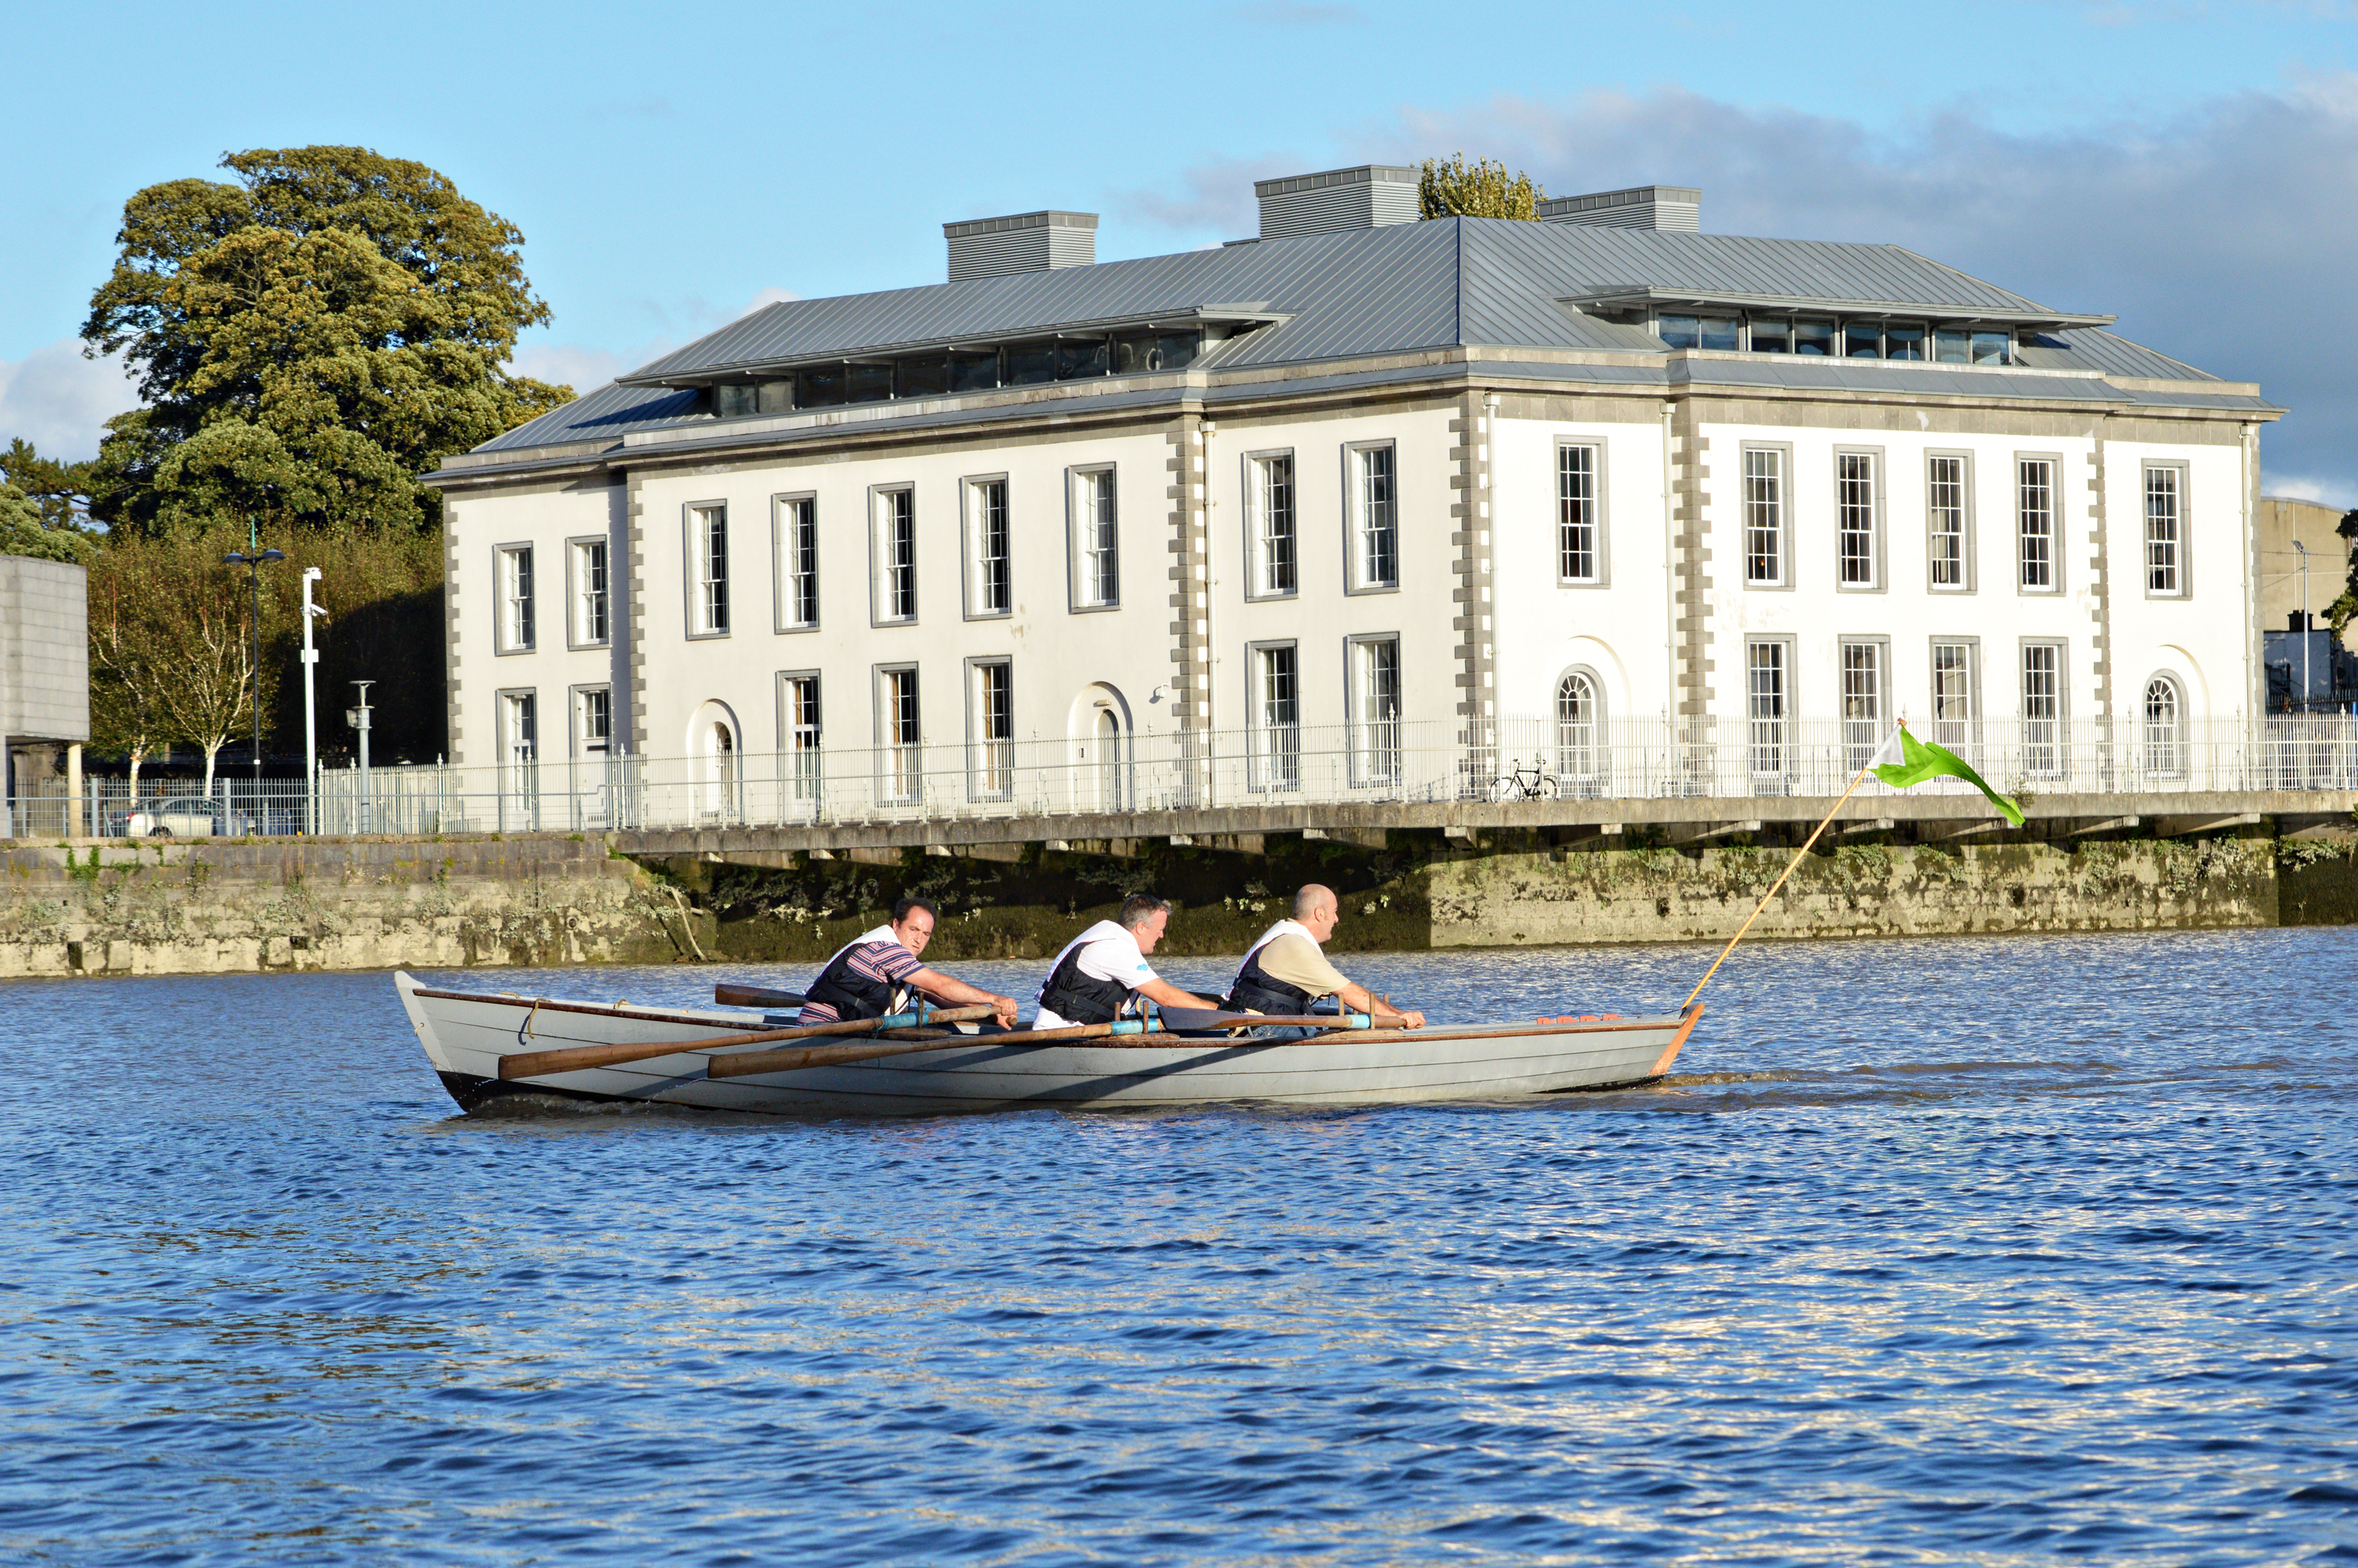 Races underway between the bridges, Limerick City